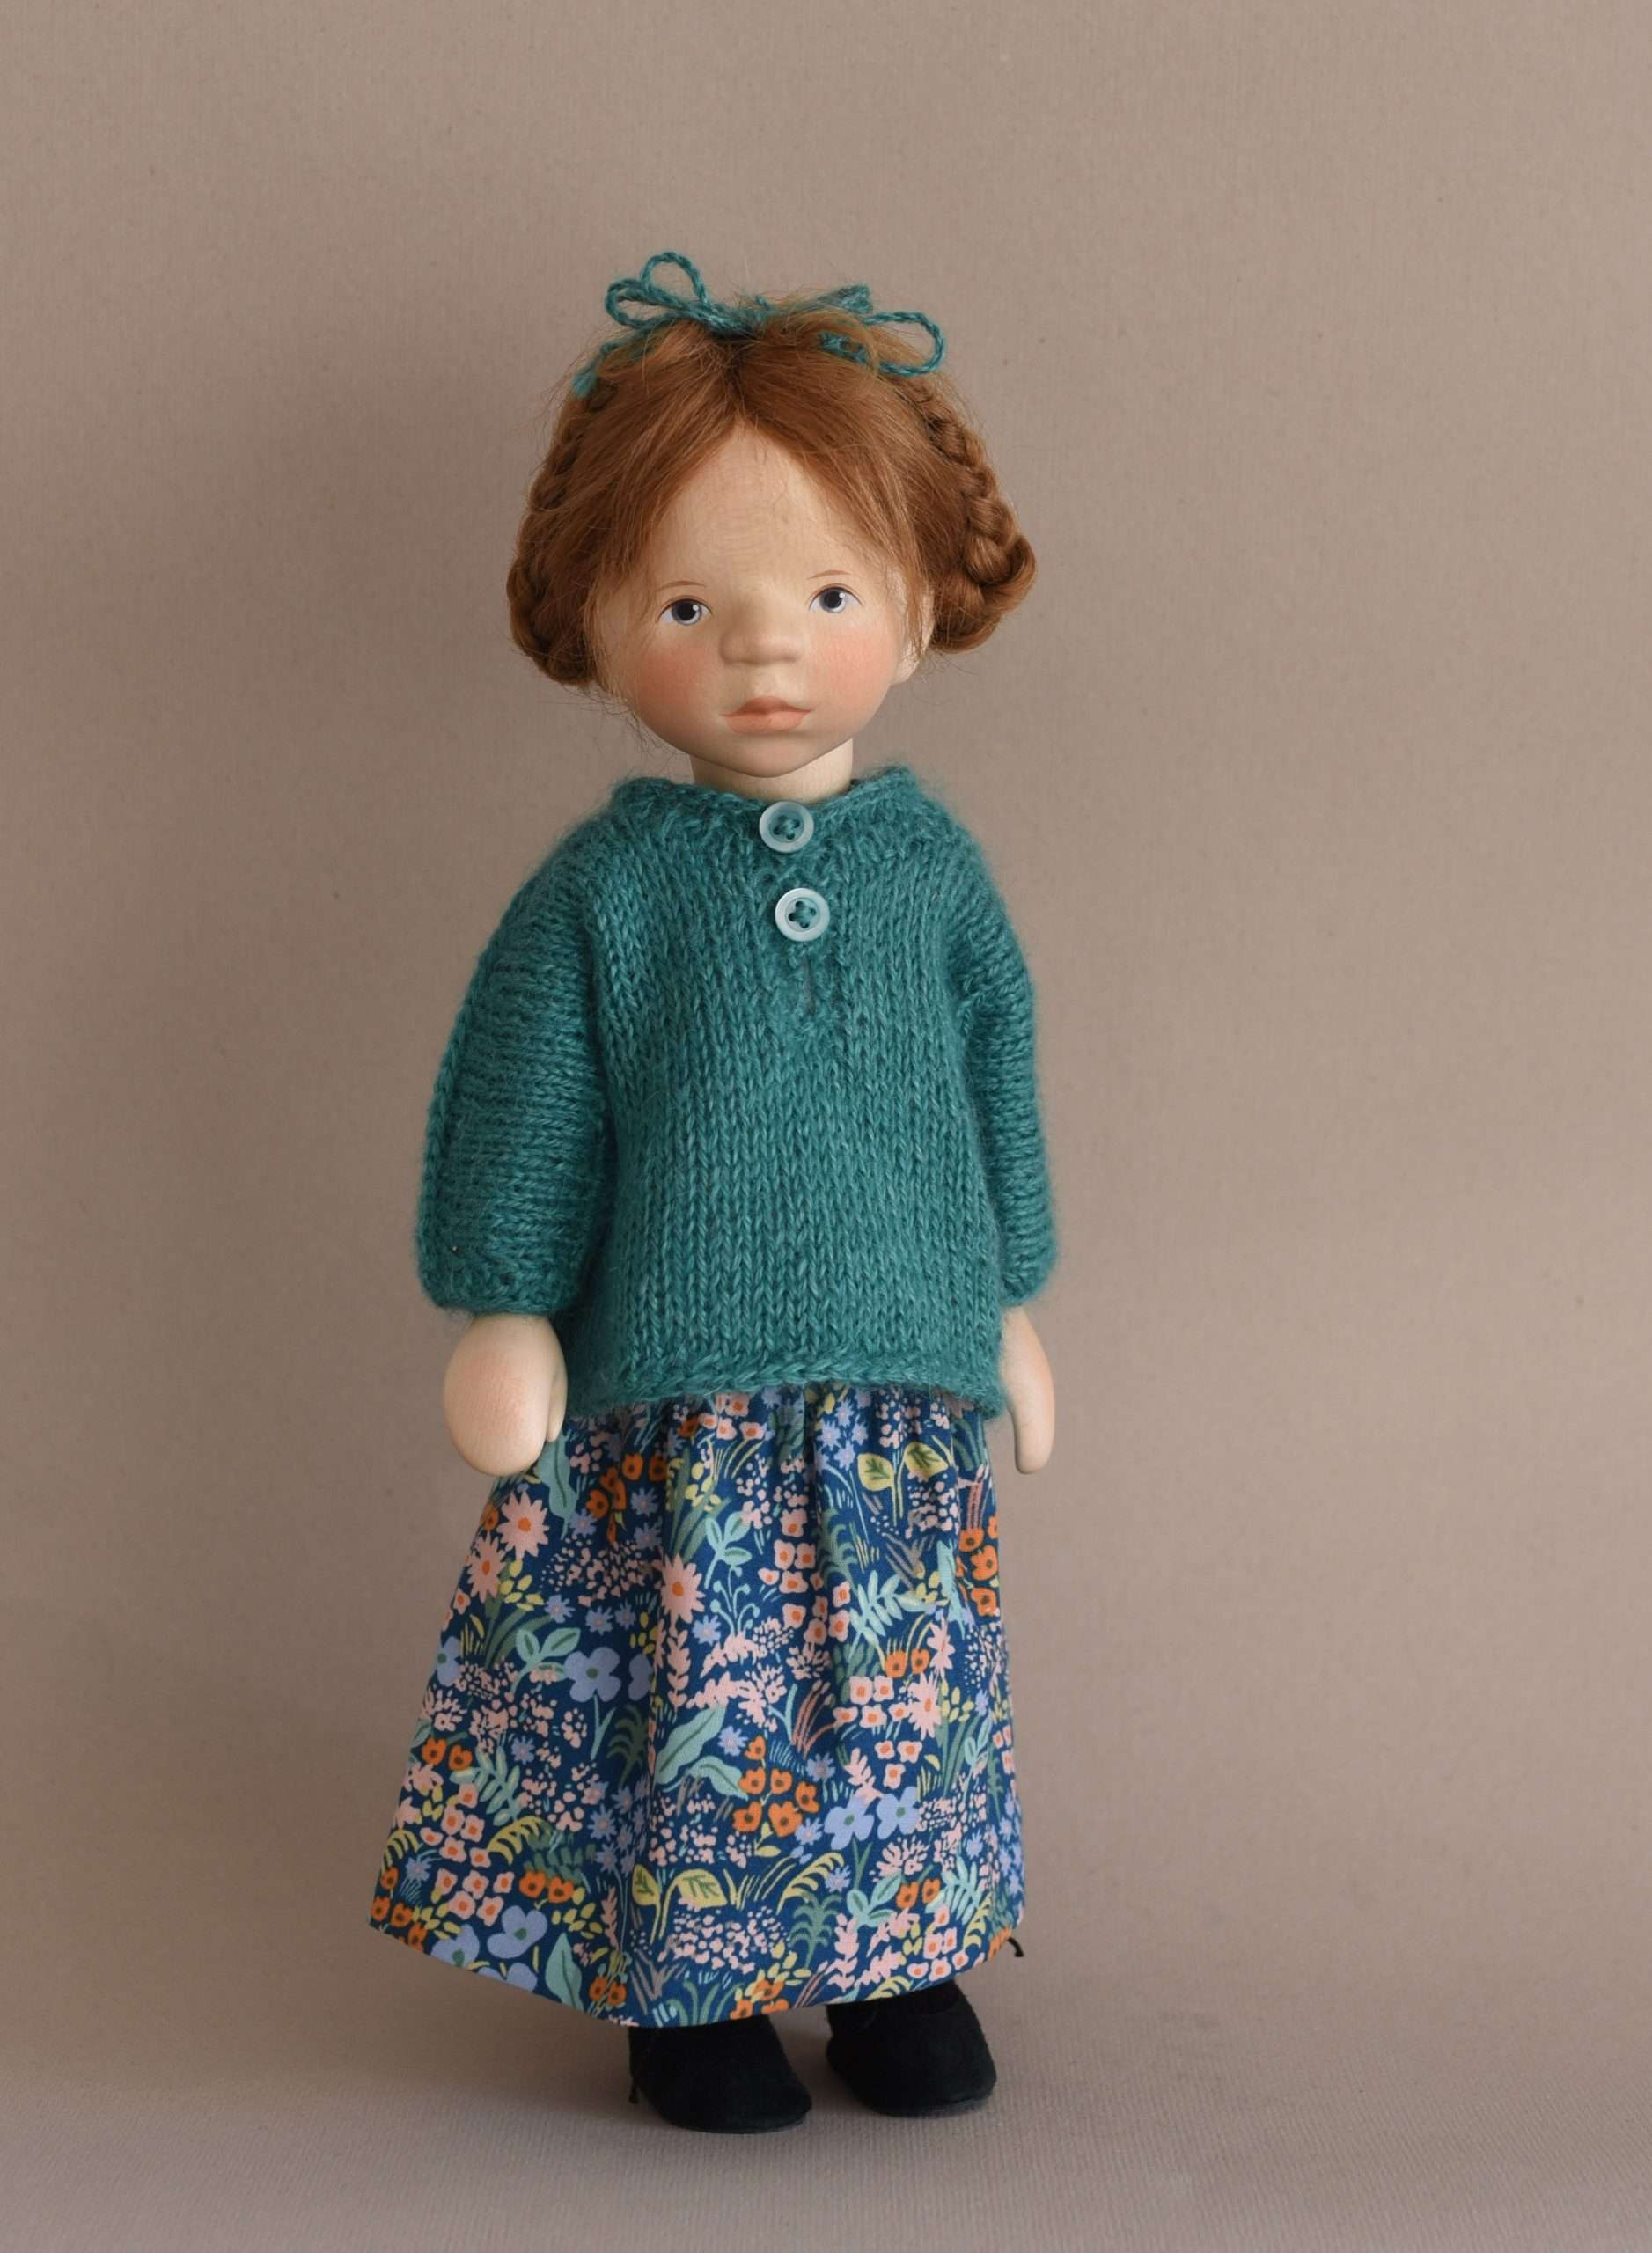 Wooden doll H374